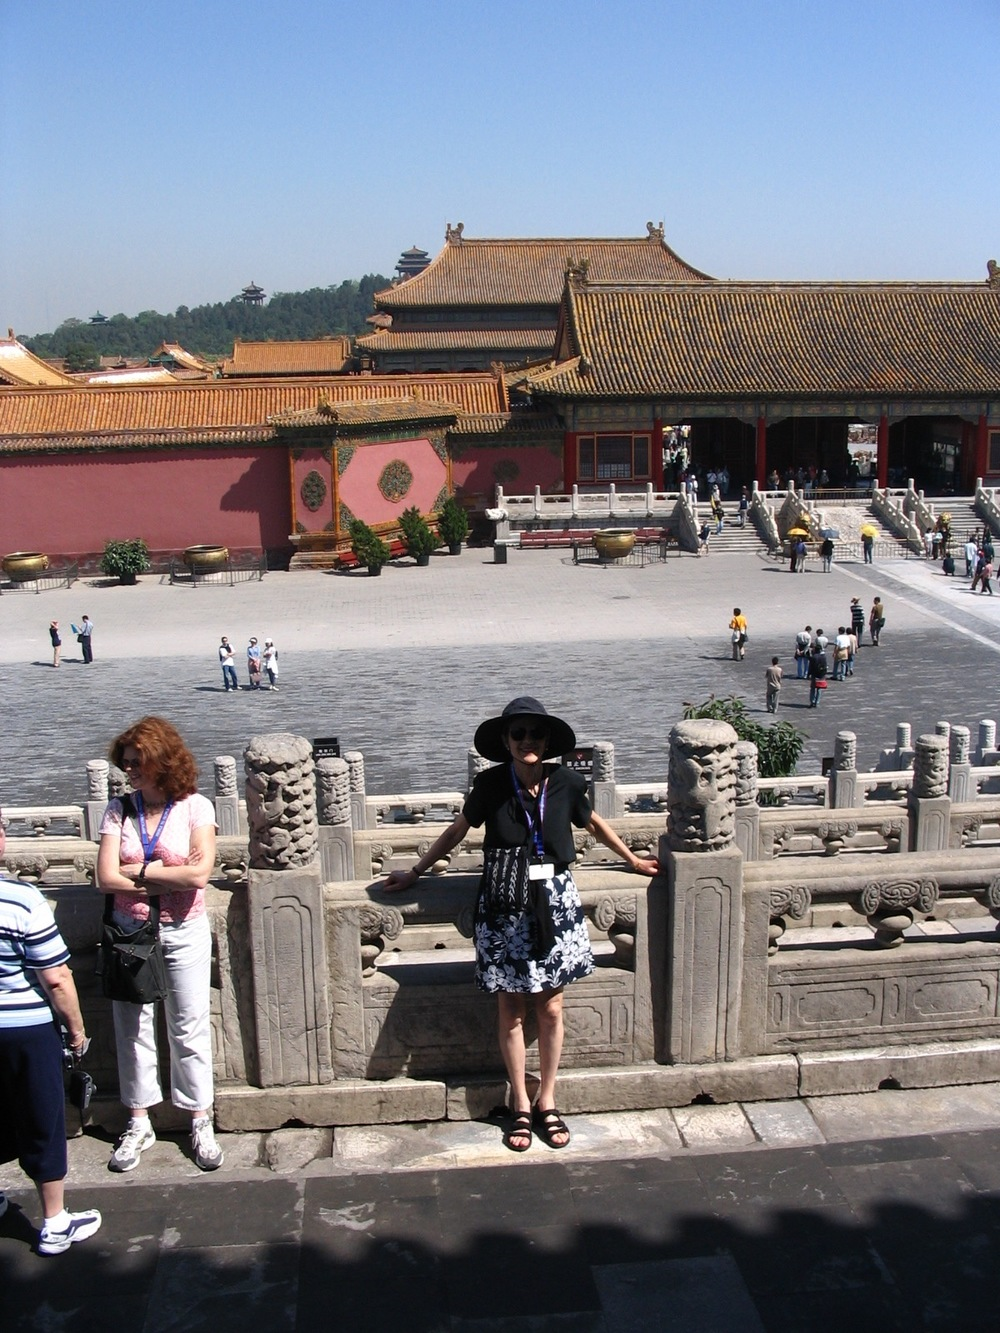 In the Forbidden City, China.